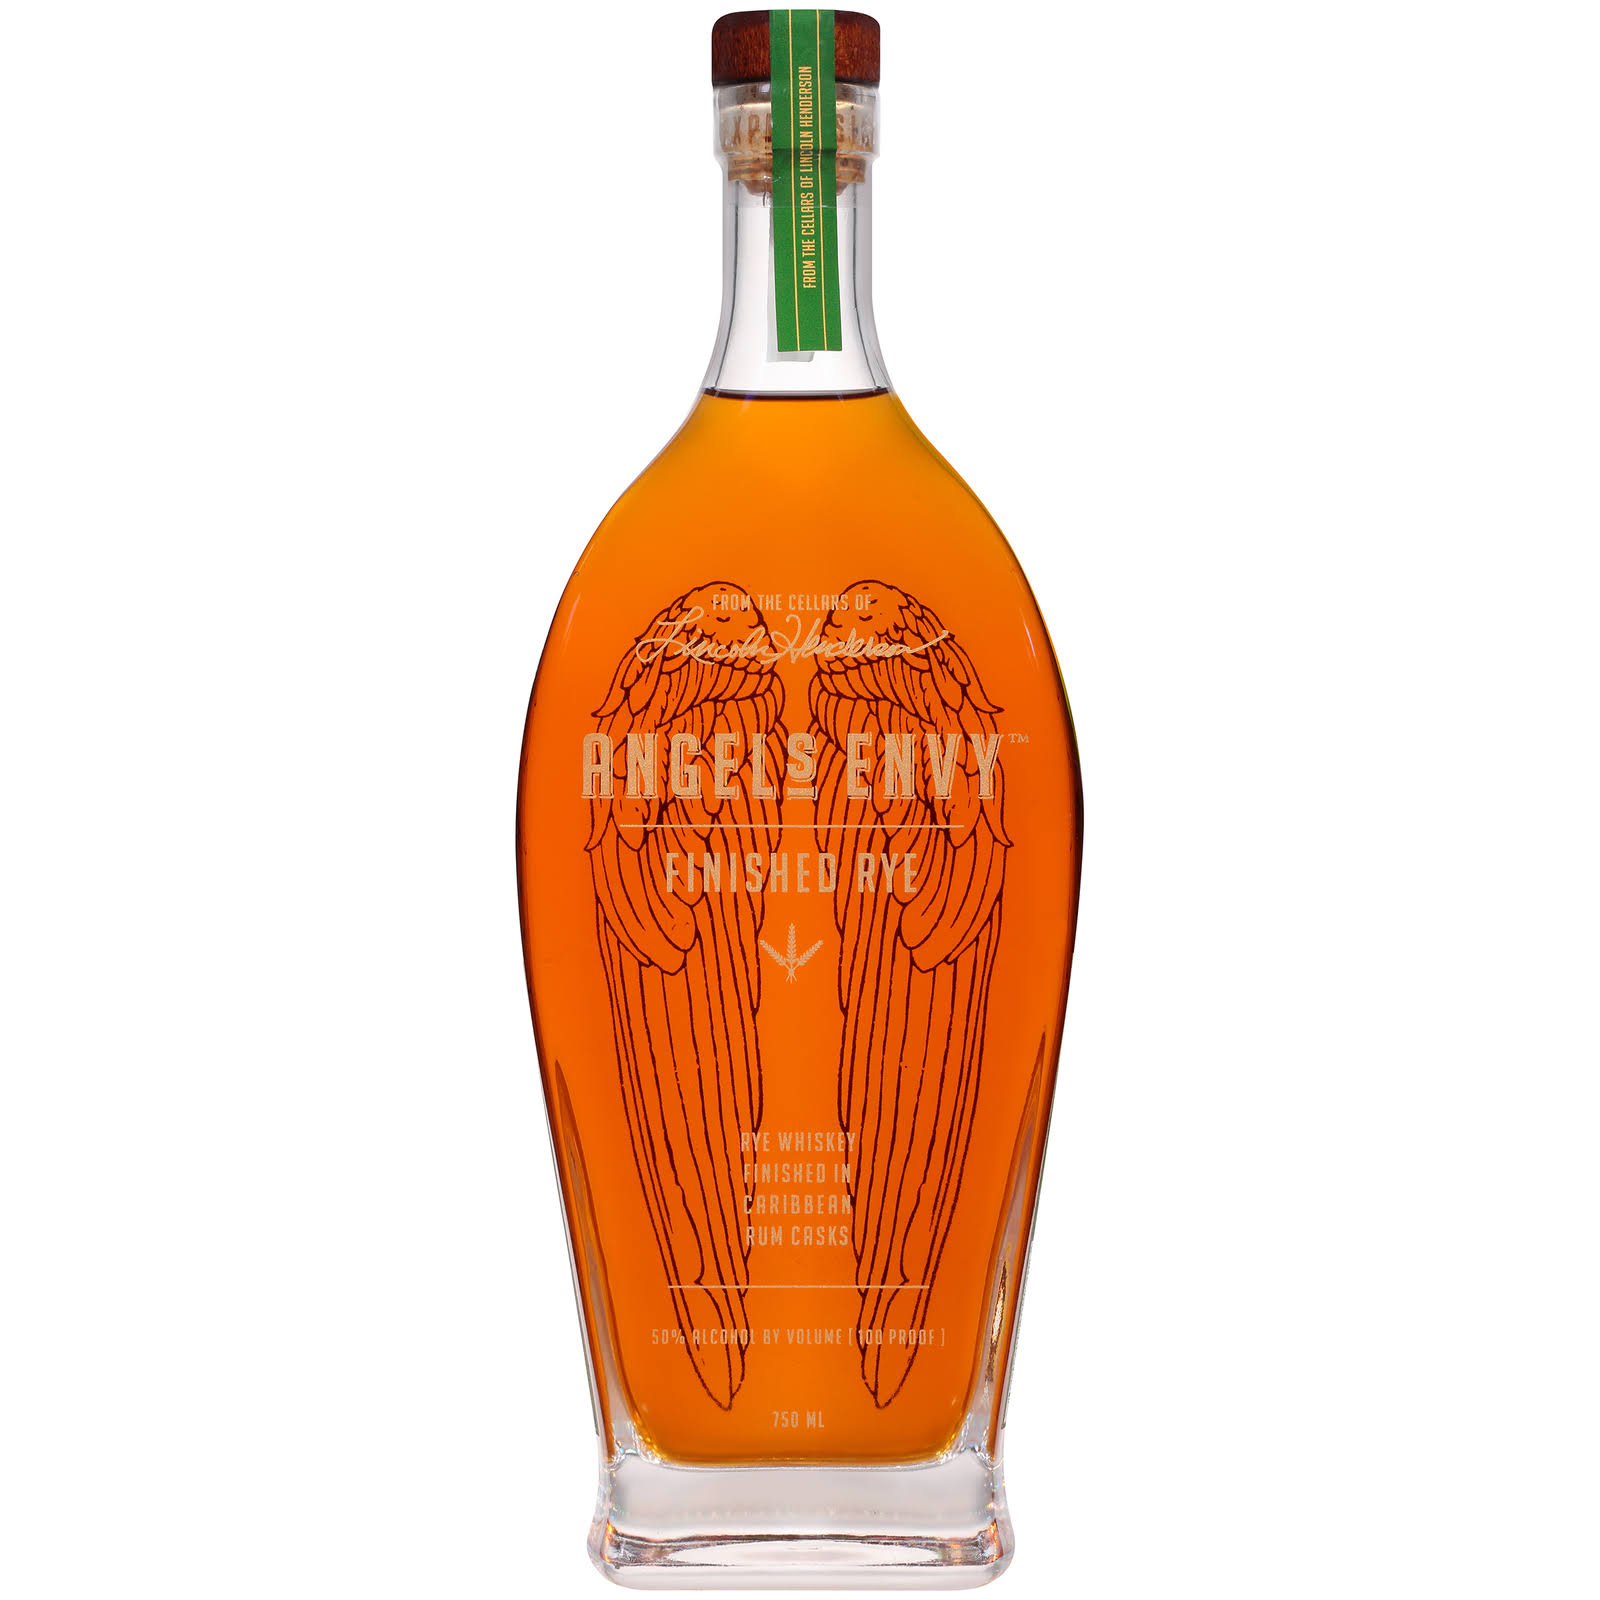 Angels Envy Rye Whiskey - 750 ml bottle